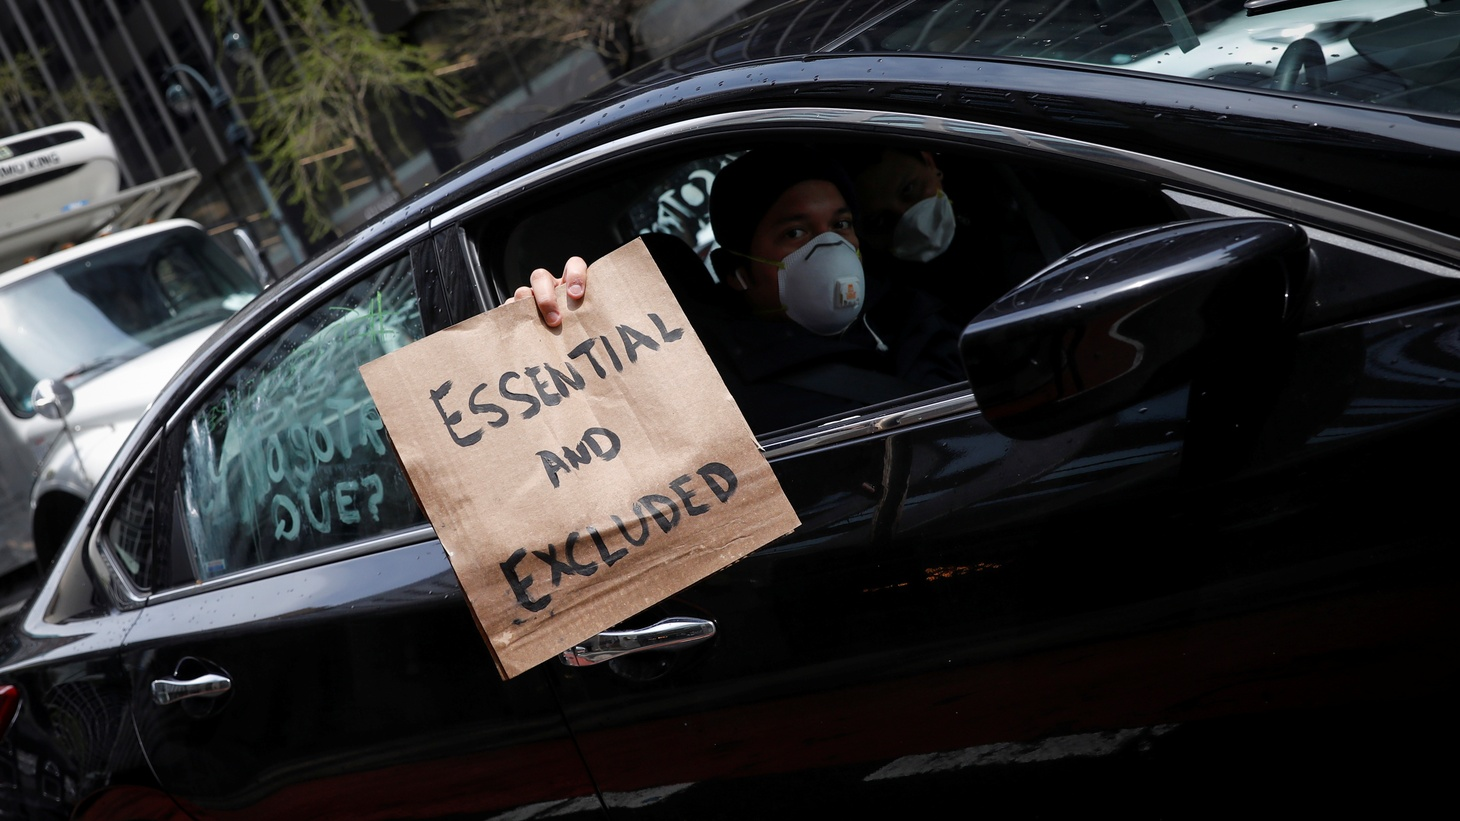 """A worker holds a sign from a car during a driving caravan demonstration in midtown Manhattan organized by """"Workers Justice Project,"""" protesting for rights of essential immigrant workers during the outbreak of COVID-19 in New York City, New York, U.S., April 21, 2020."""